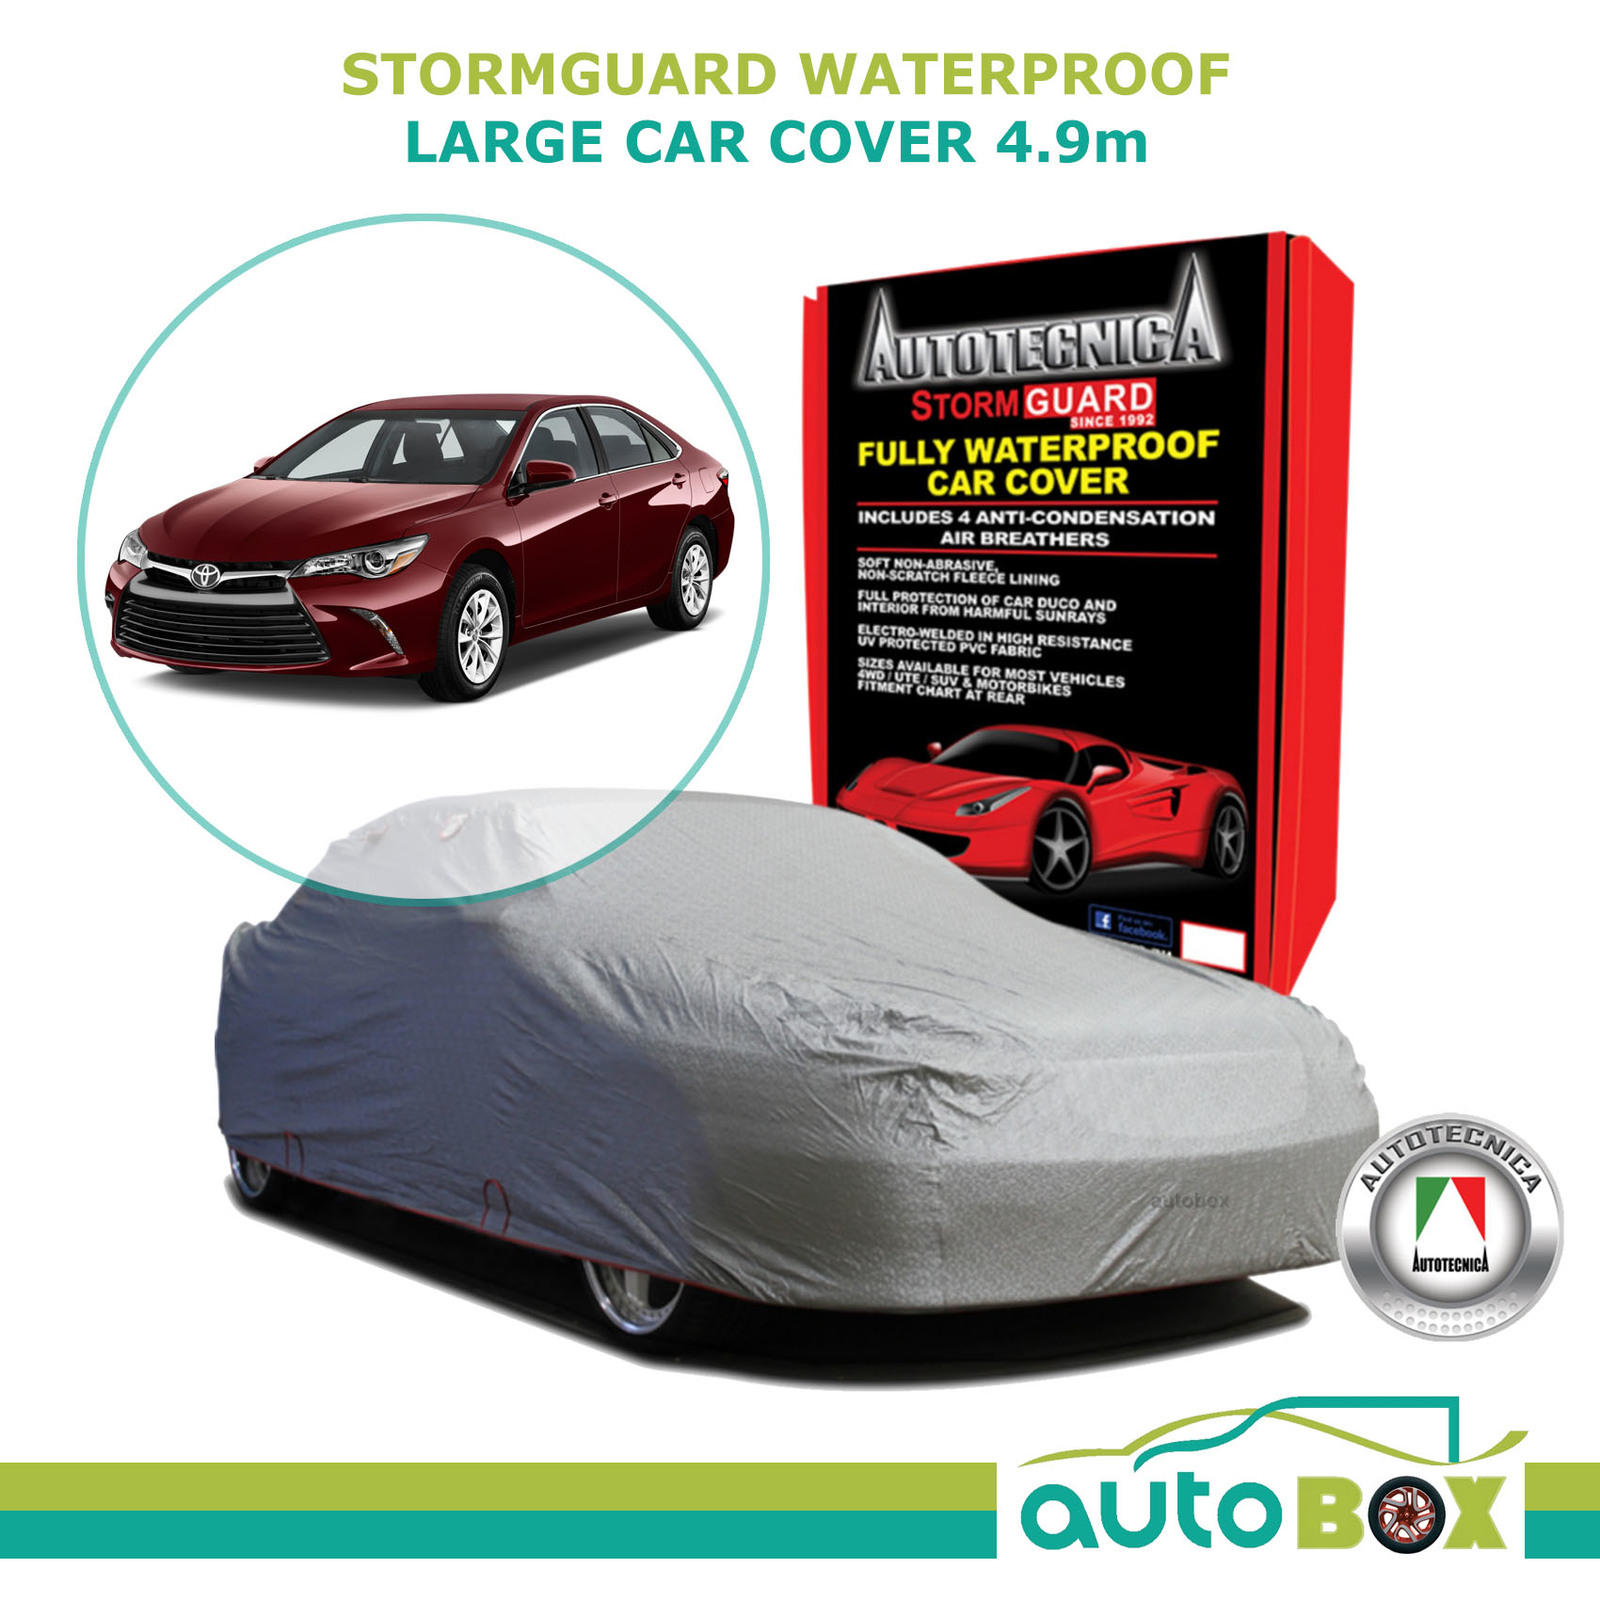 Toyota Camry Autotecnica Car Cover Large 4.9m Storm Guard